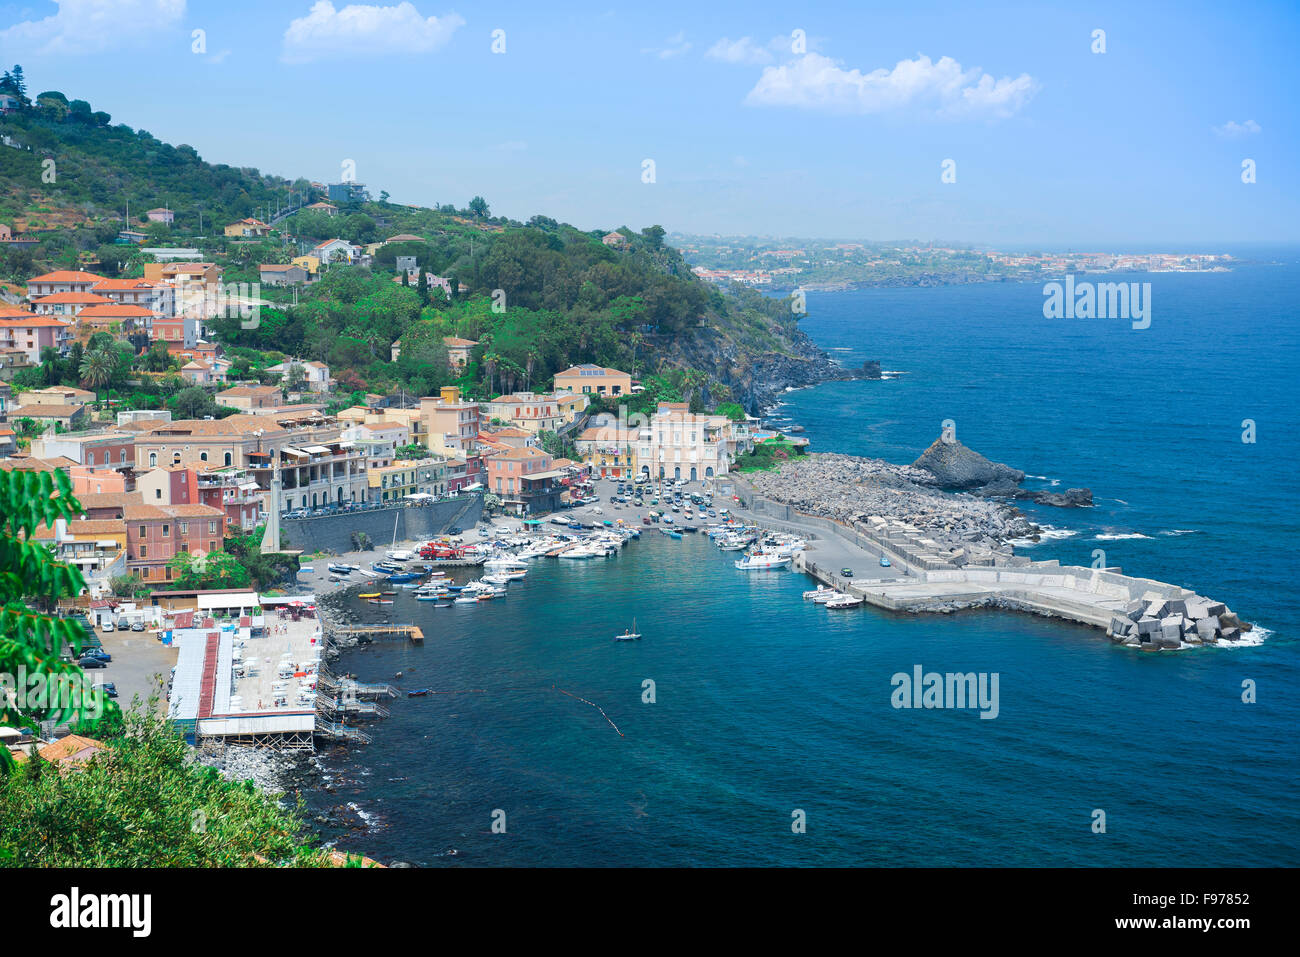 Sicily cove, view in summer of the secluded bay of Santa Maria della Scala, near Acireale in Sicily. - Stock Image